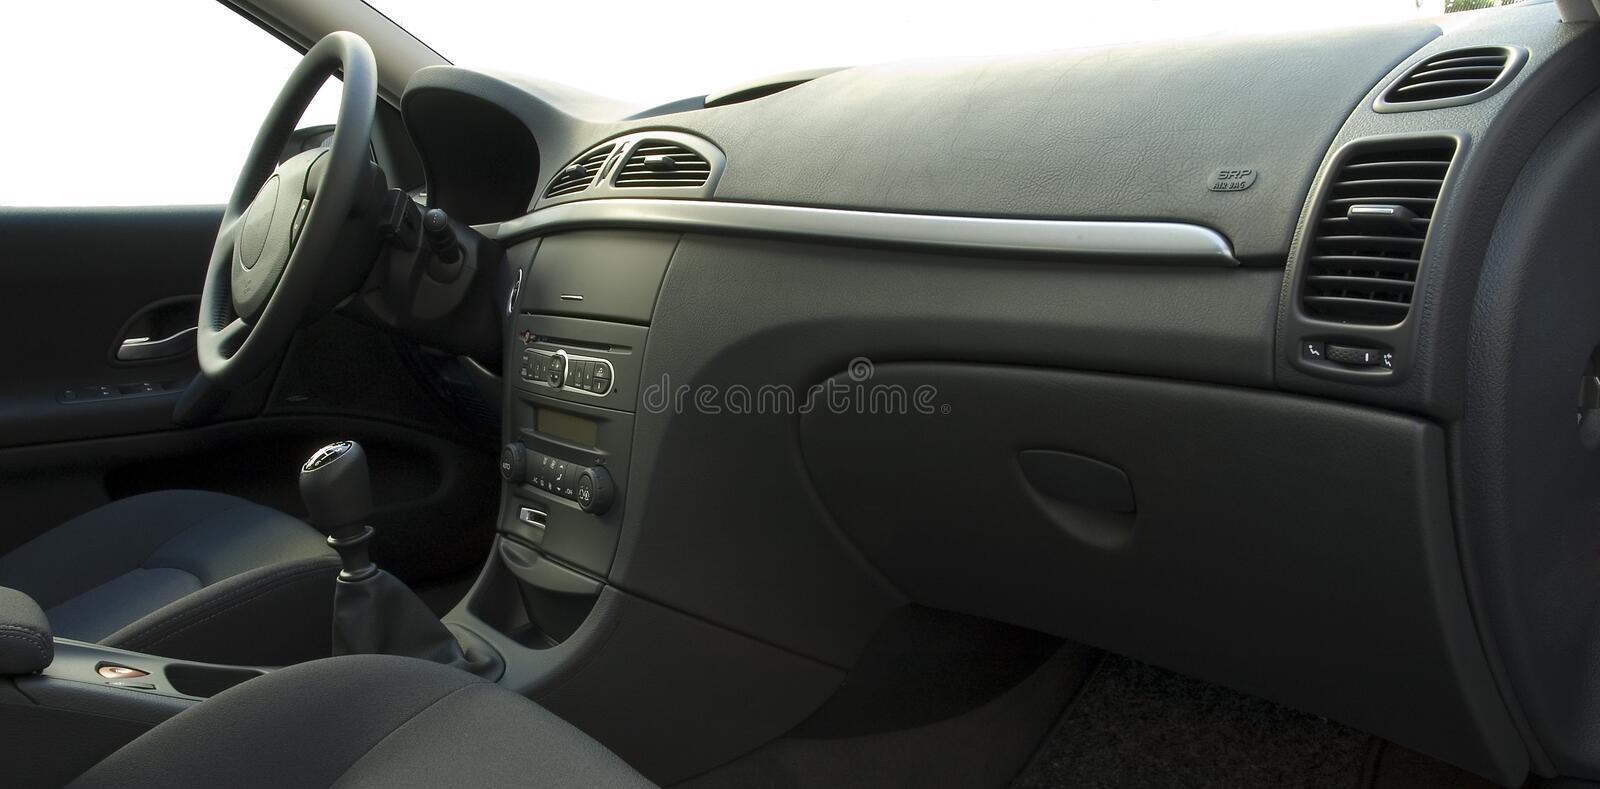 Interior do carro imagem de stock royalty free